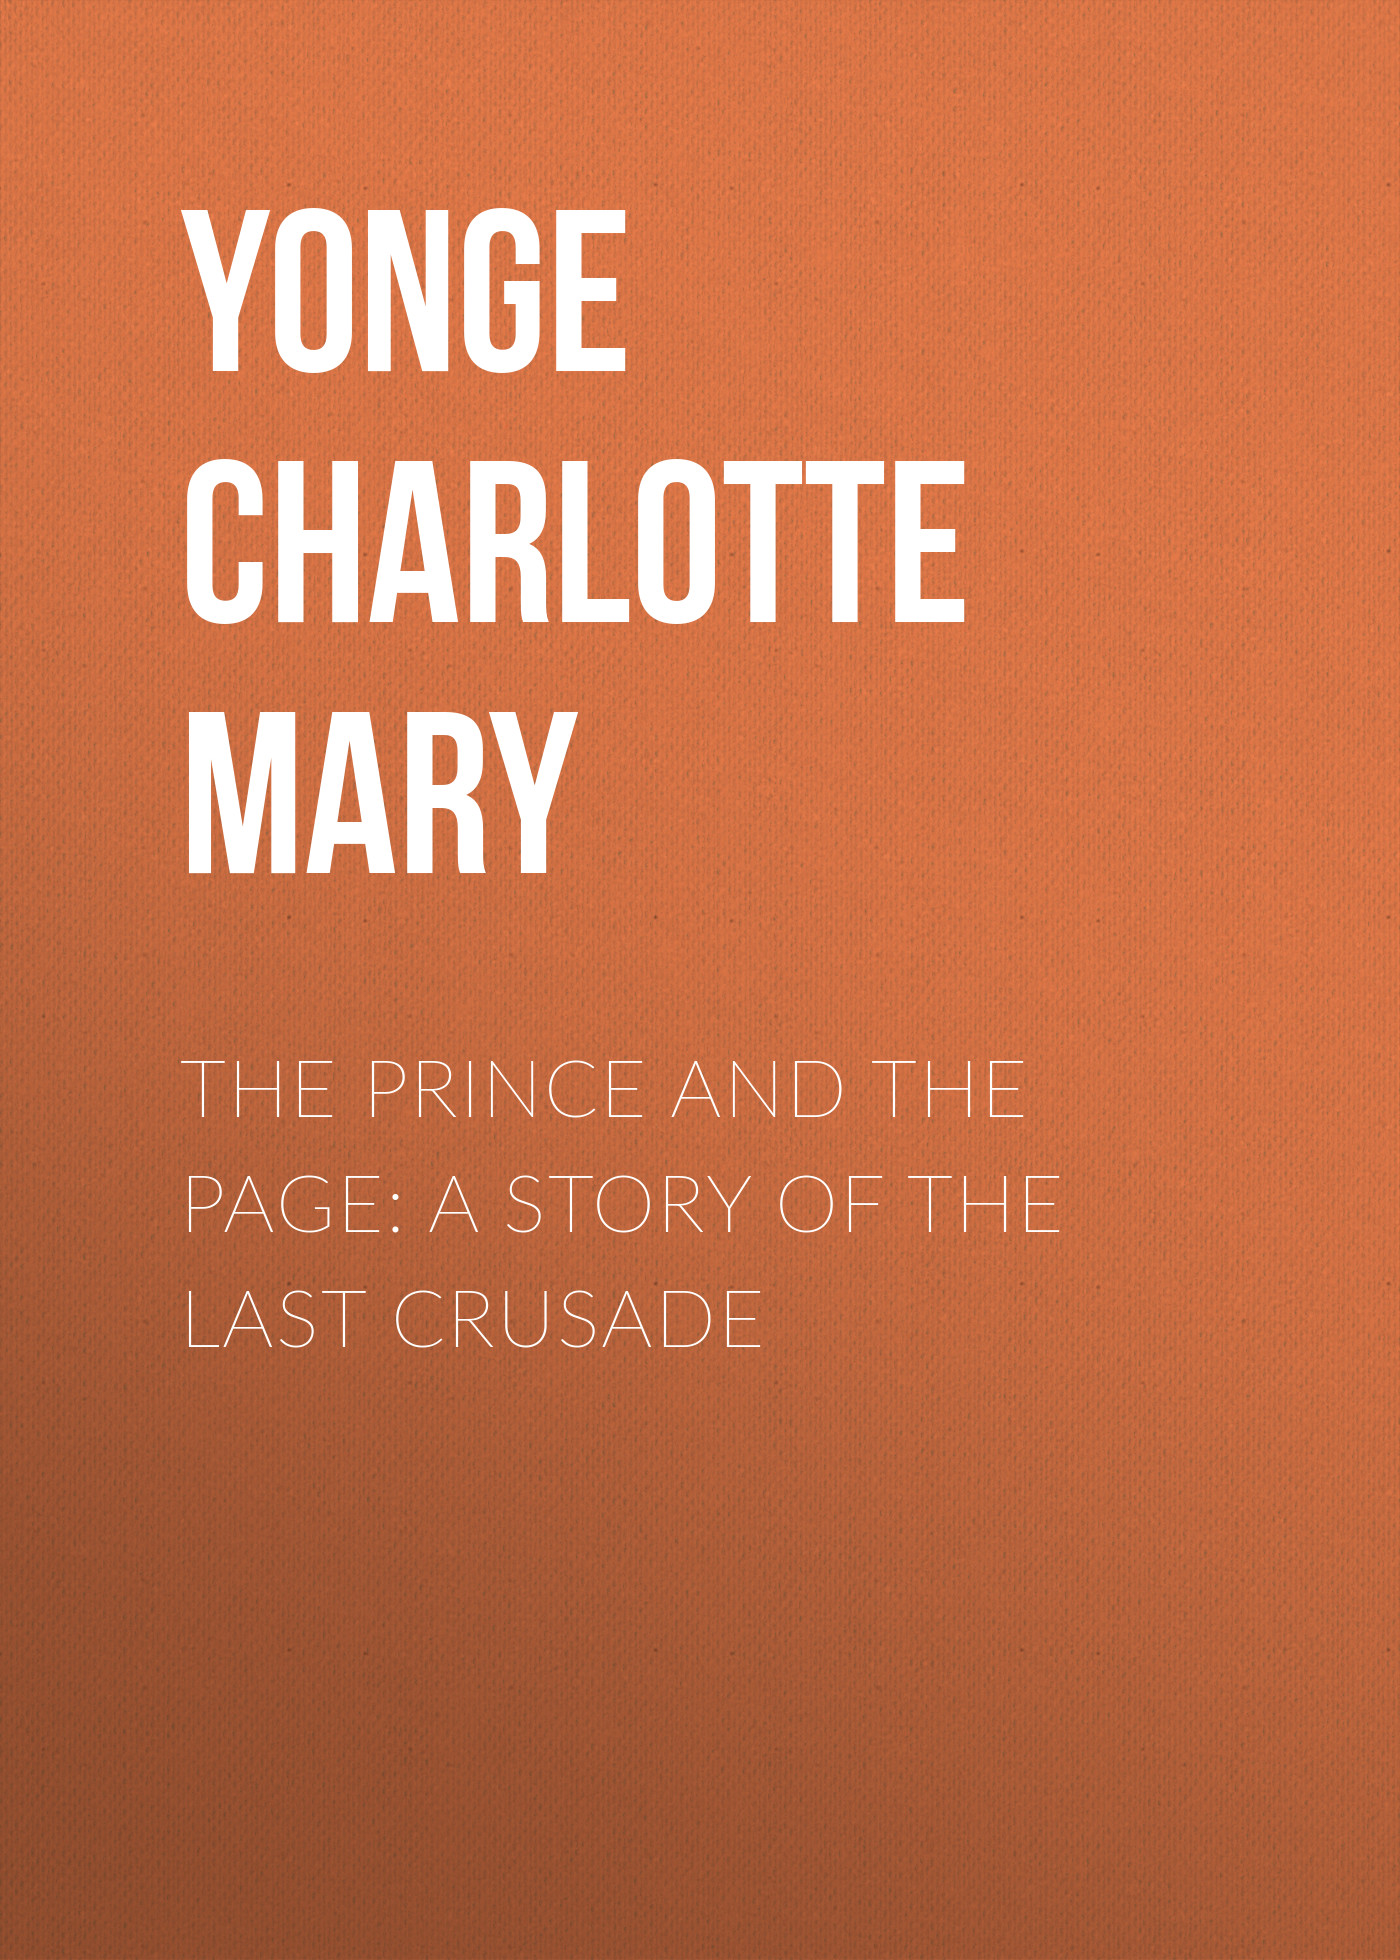 лучшая цена Yonge Charlotte Mary The Prince and the Page: A Story of the Last Crusade